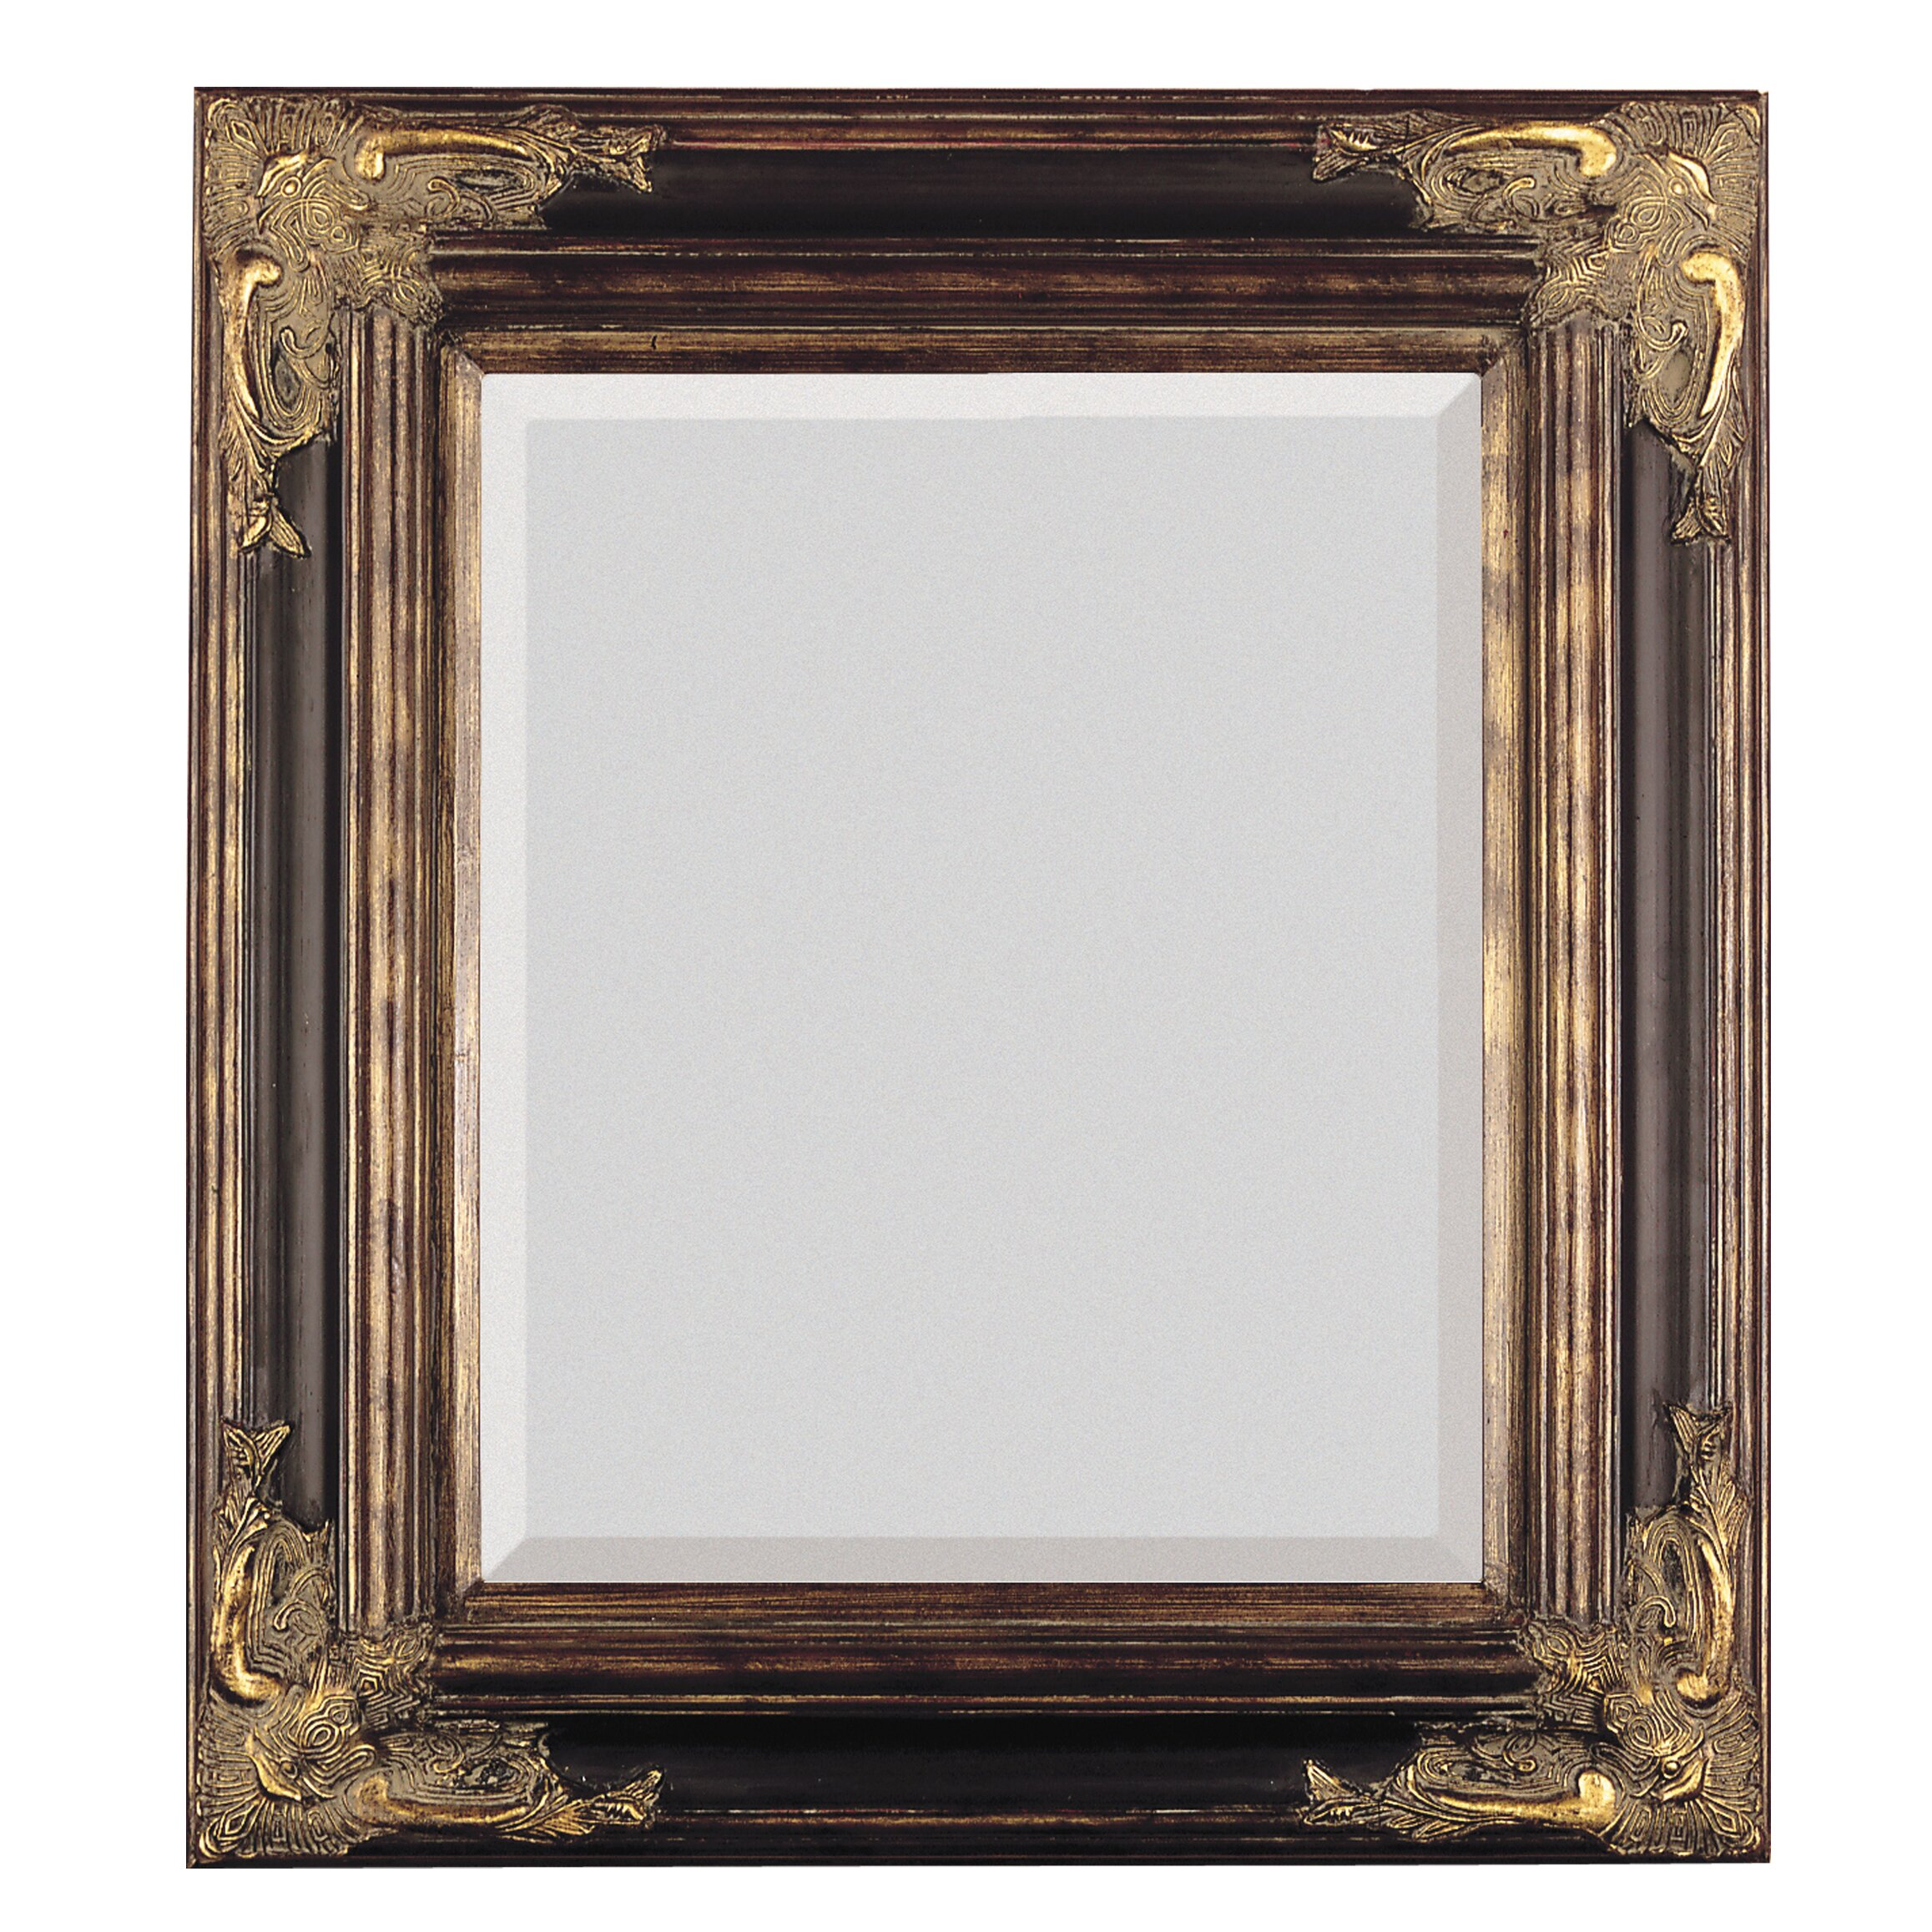 Majestic mirror bronze with gold square antique framed for Beveled glass mirror